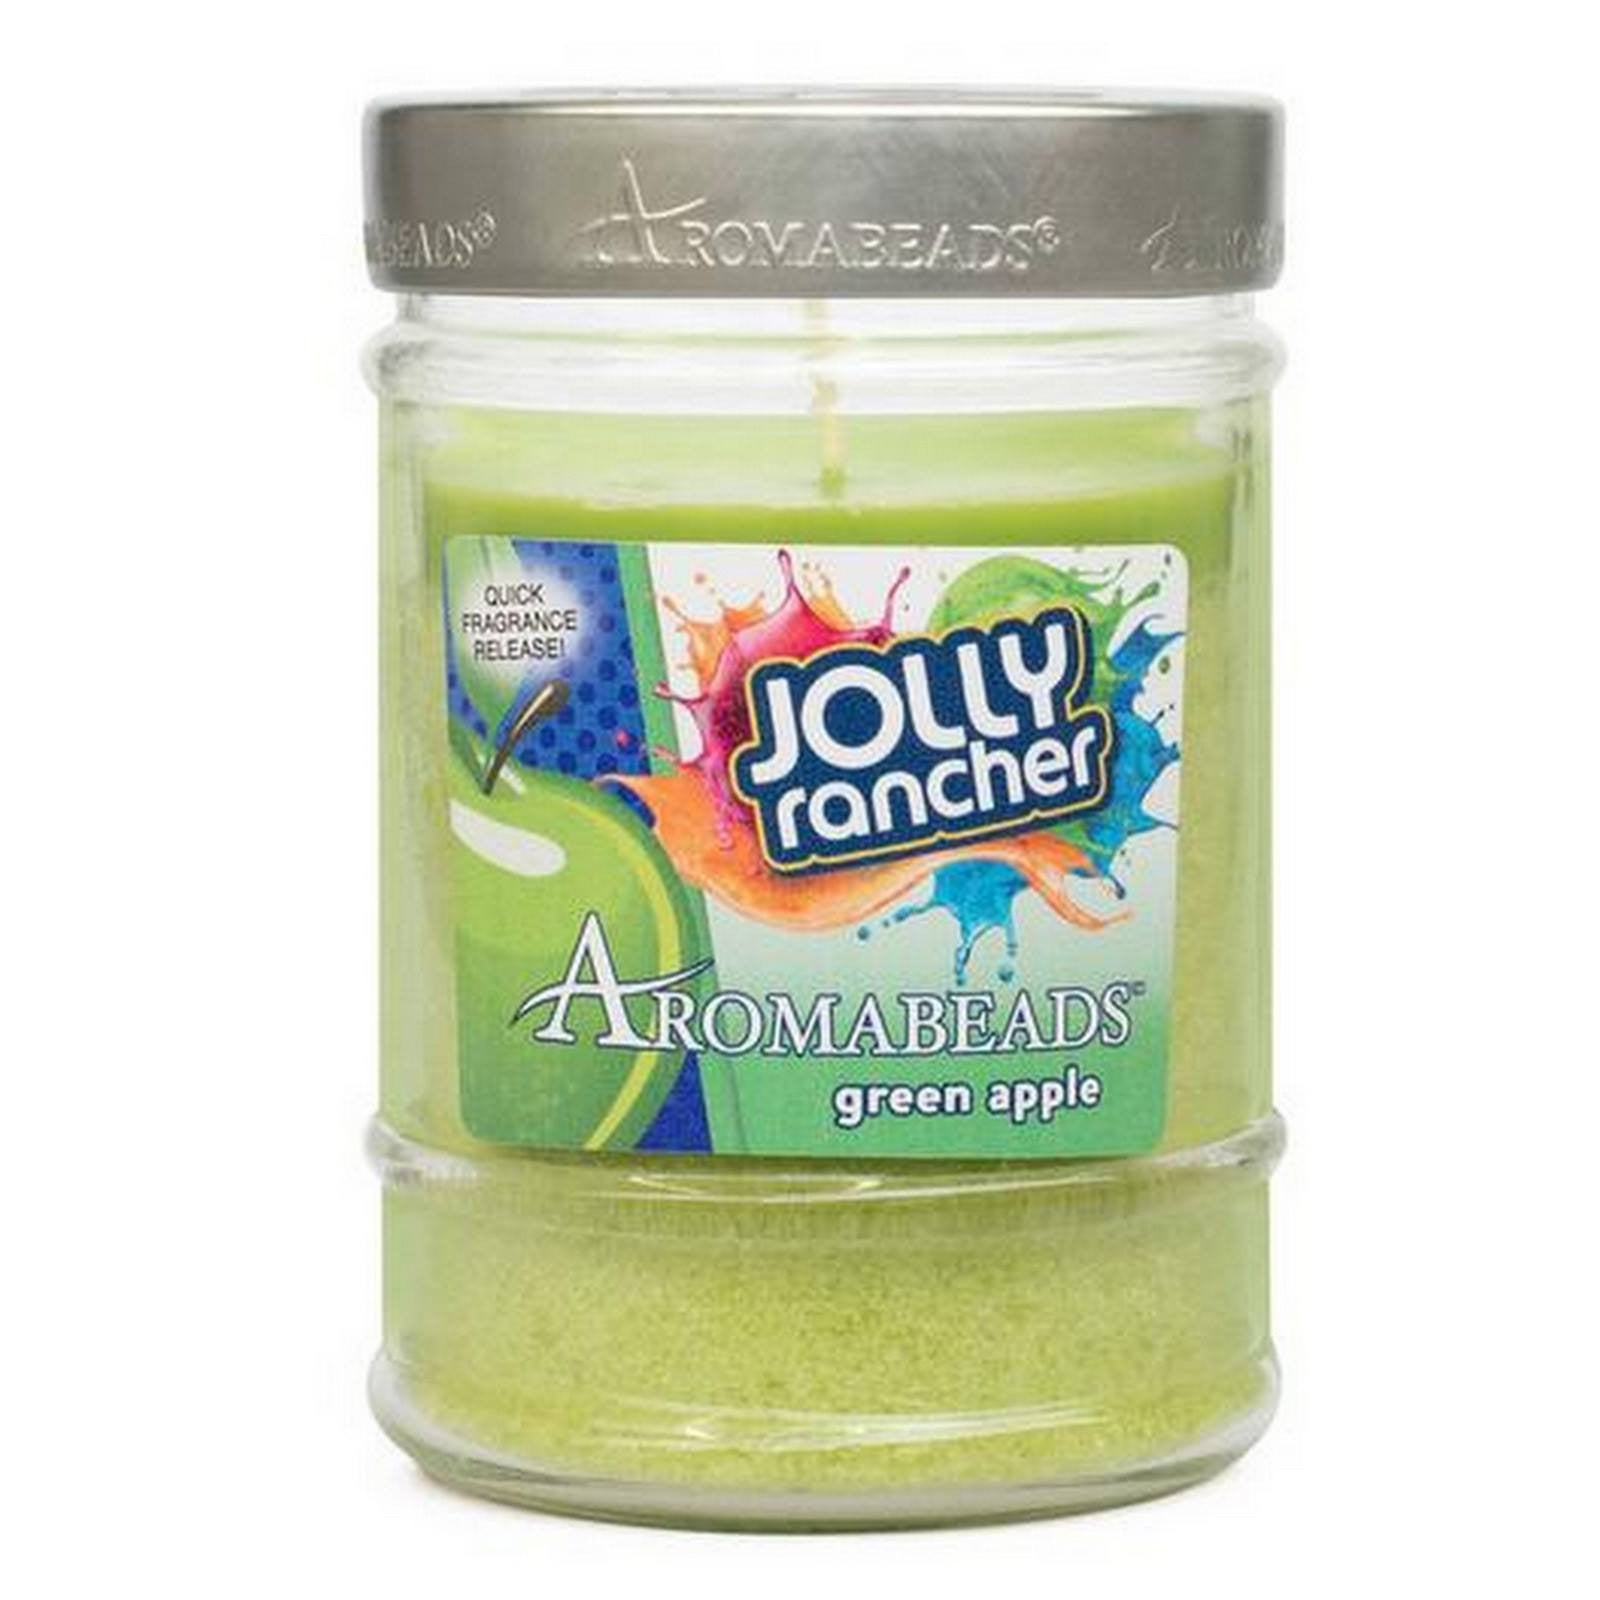 Jolly Rancher Green Apple Scented Aromabeads Canister Candle - Candlemart.com